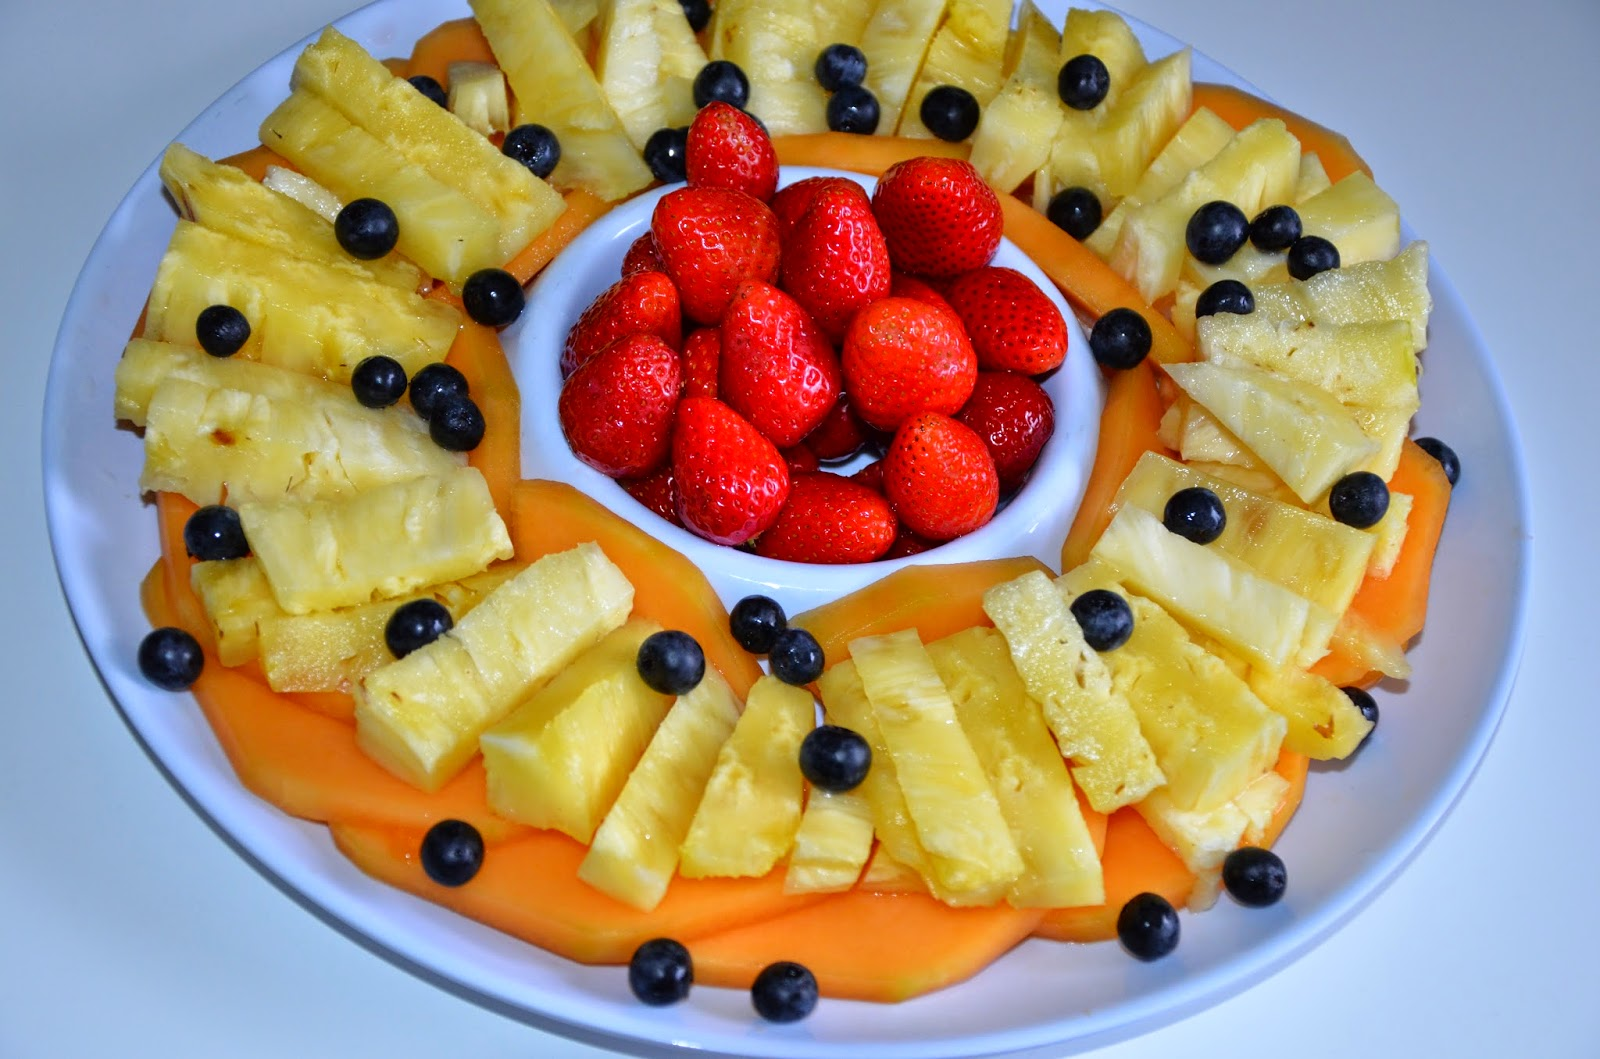 cantaloupe, pineapple, strawberries and blueberries,